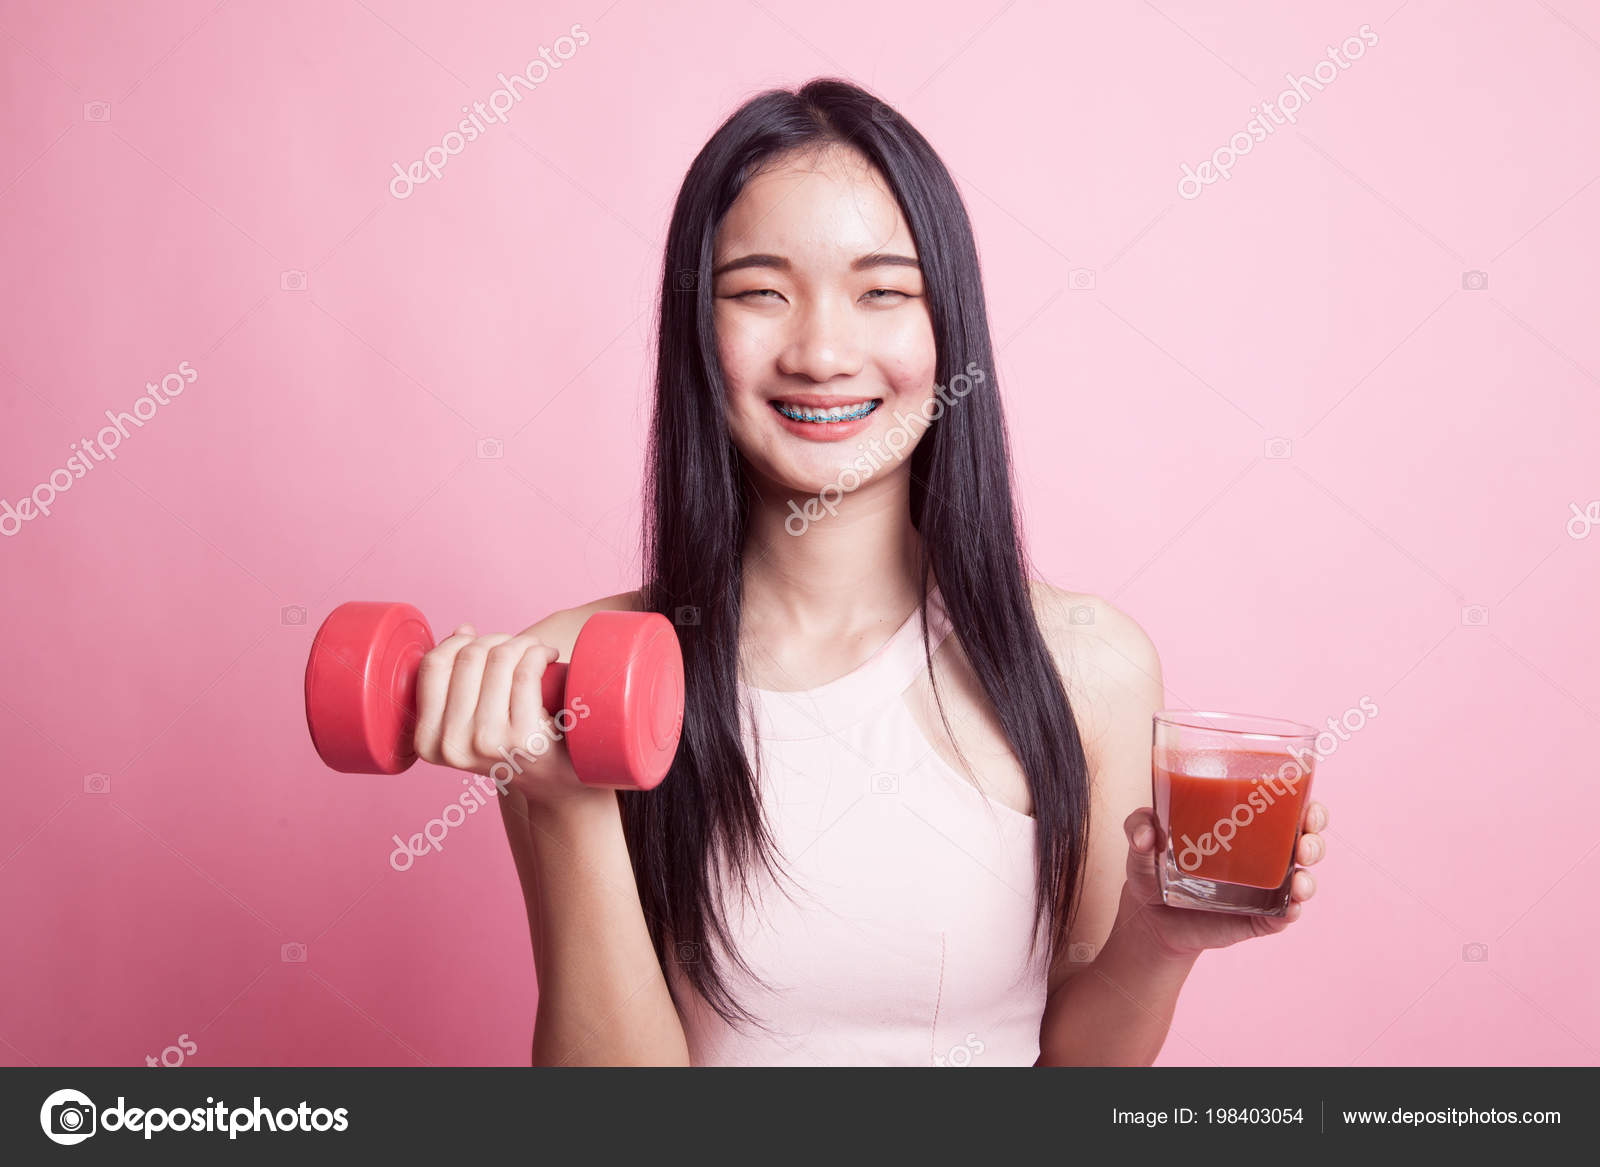 78b13dabb7d Young Healthy Asian Woman Dumbbell Tomato Juice Pink Background — Stock  Photo